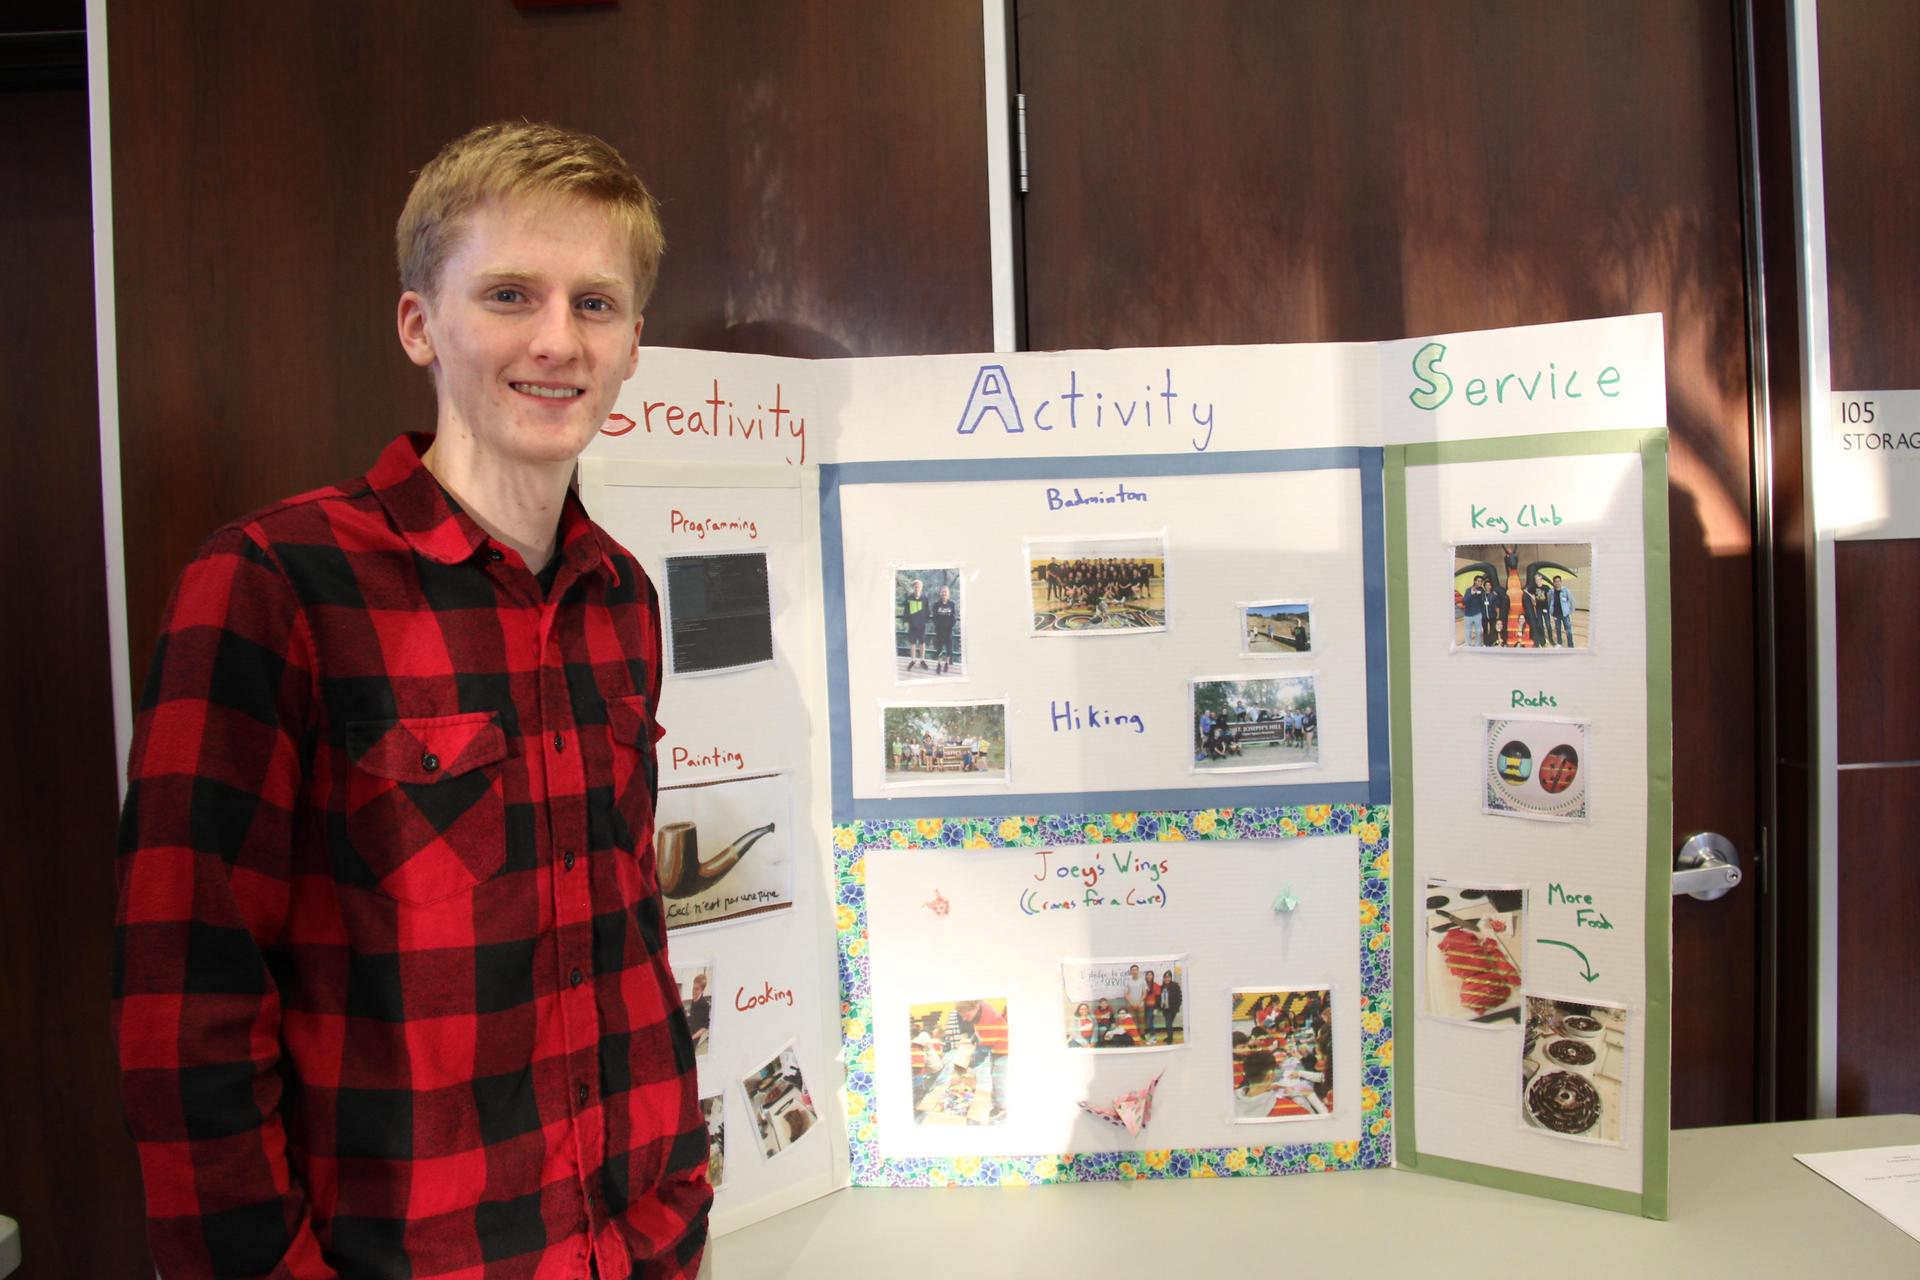 Image of IB Student - Connor - showcasing his Creativity, Activity & Service experiences